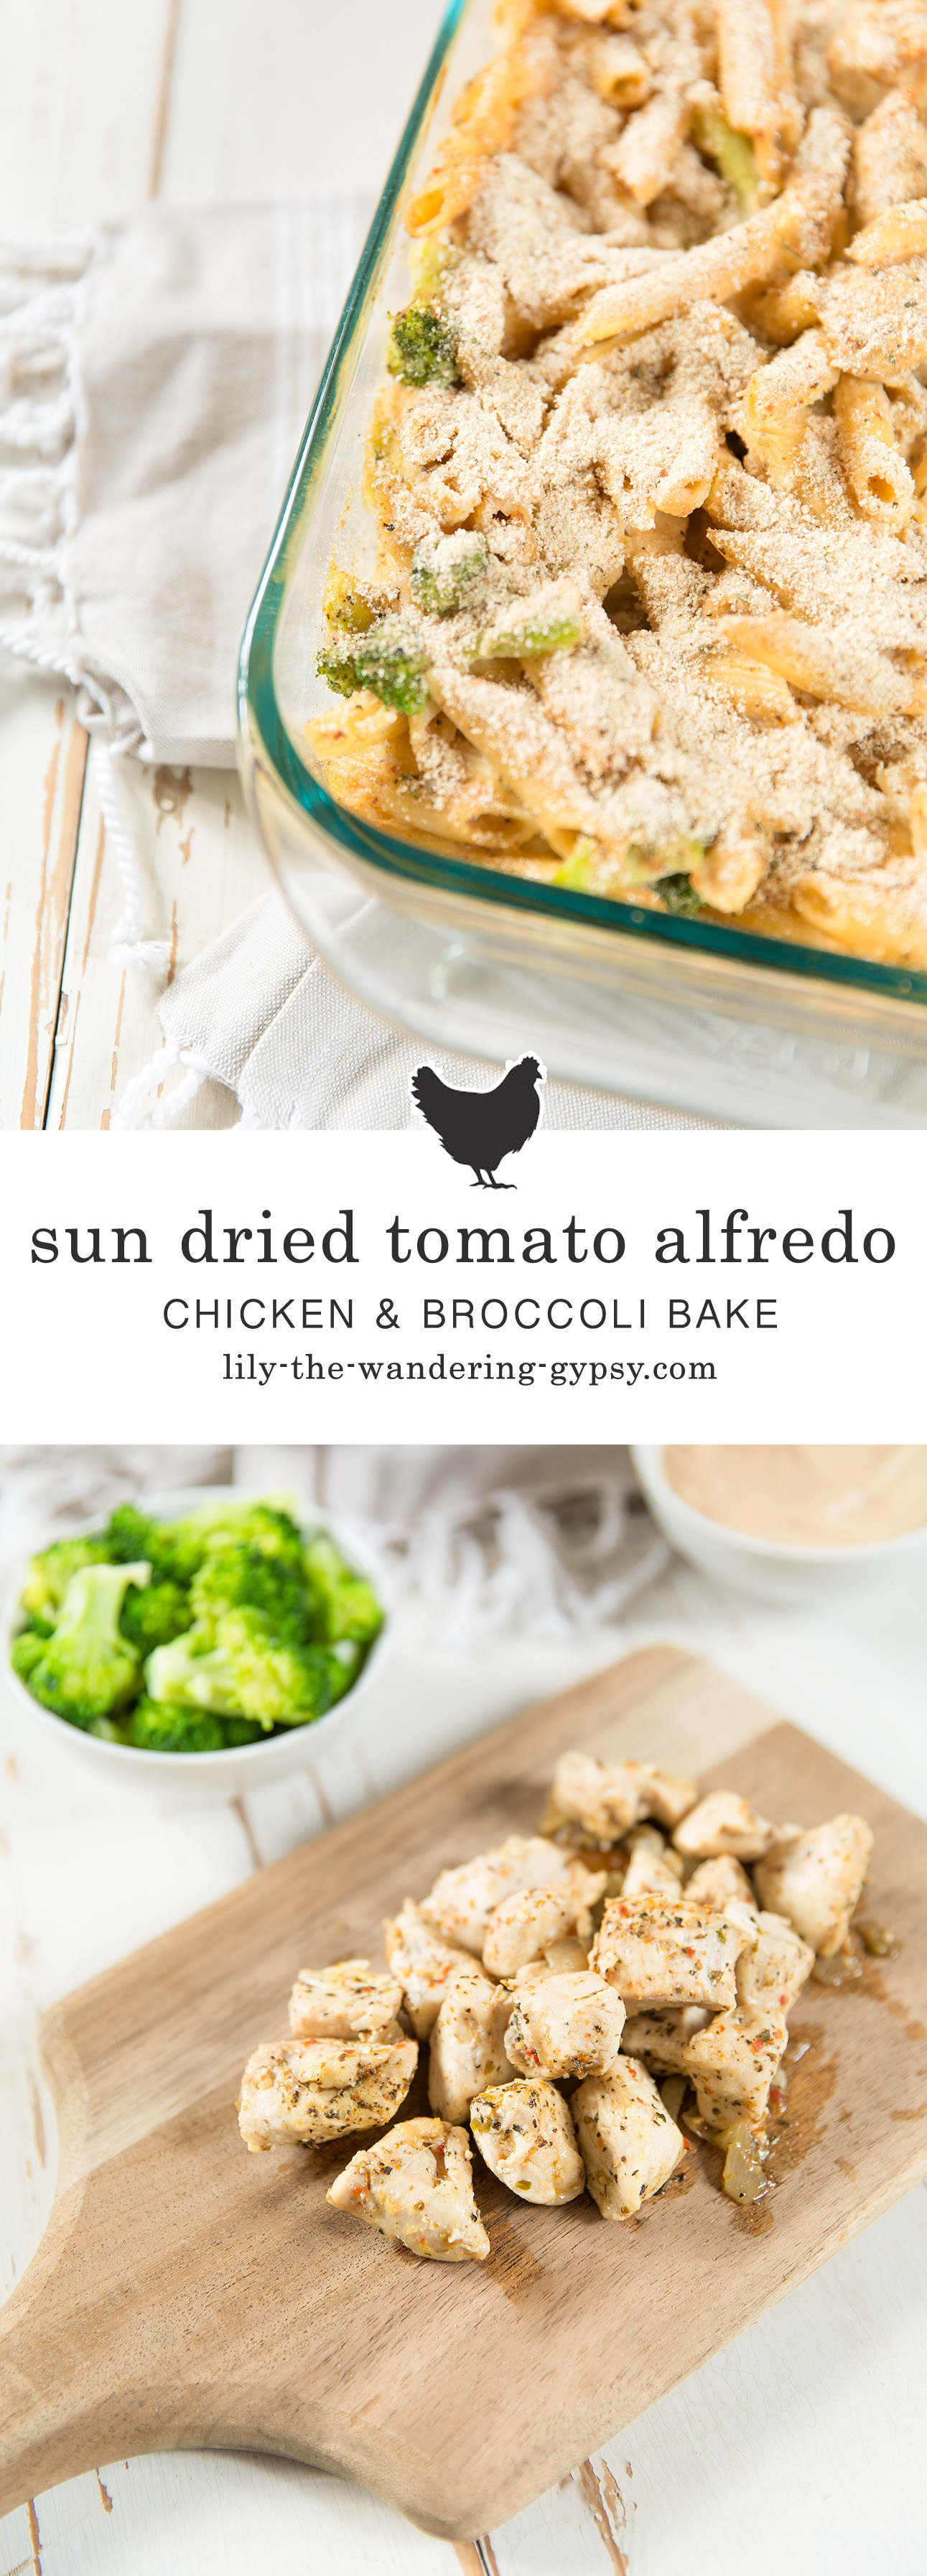 Sun Dried tomato Alfredo Chicken and Broccoli Bake Recipe